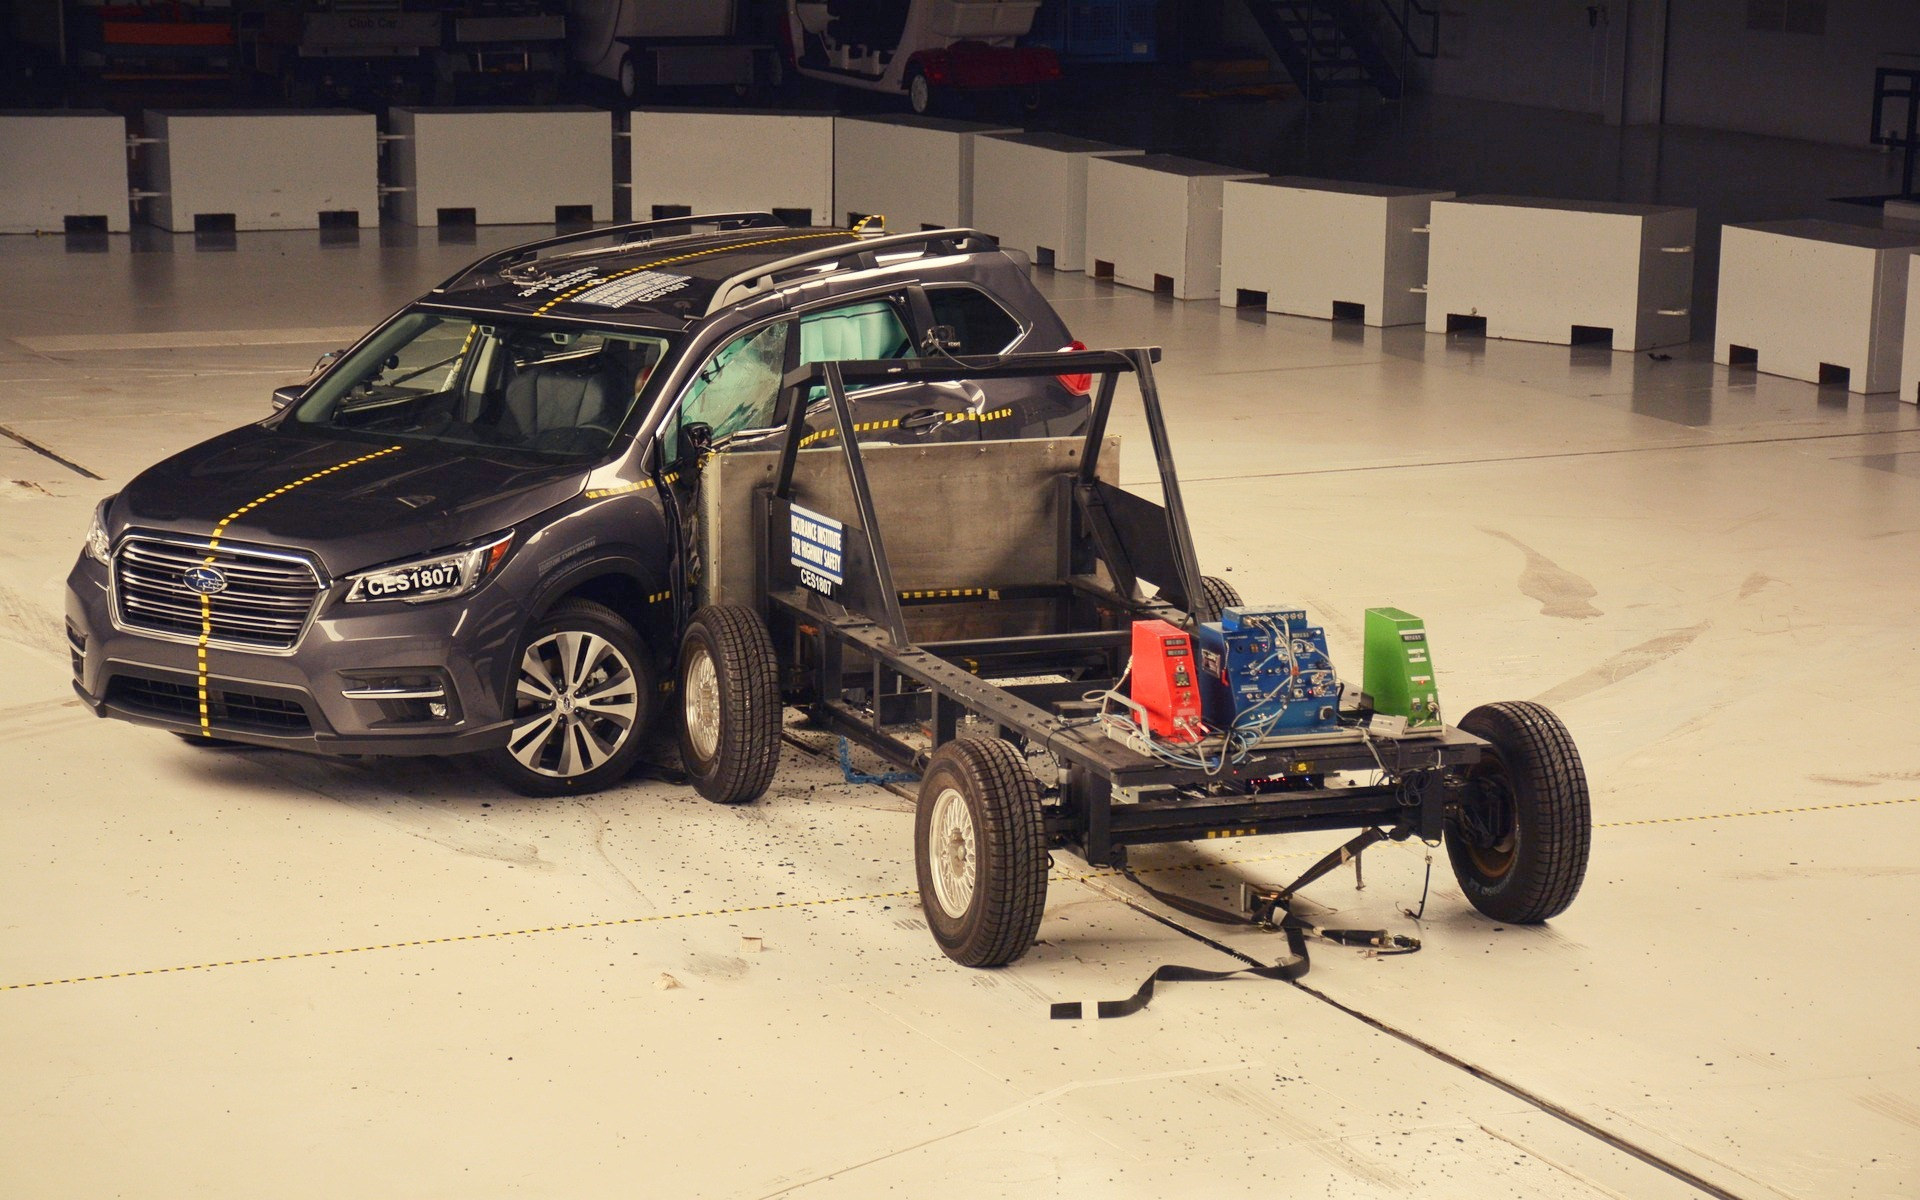 2019 Subaru Ascent IIHS Crash Test: No Compromise on Safety - The